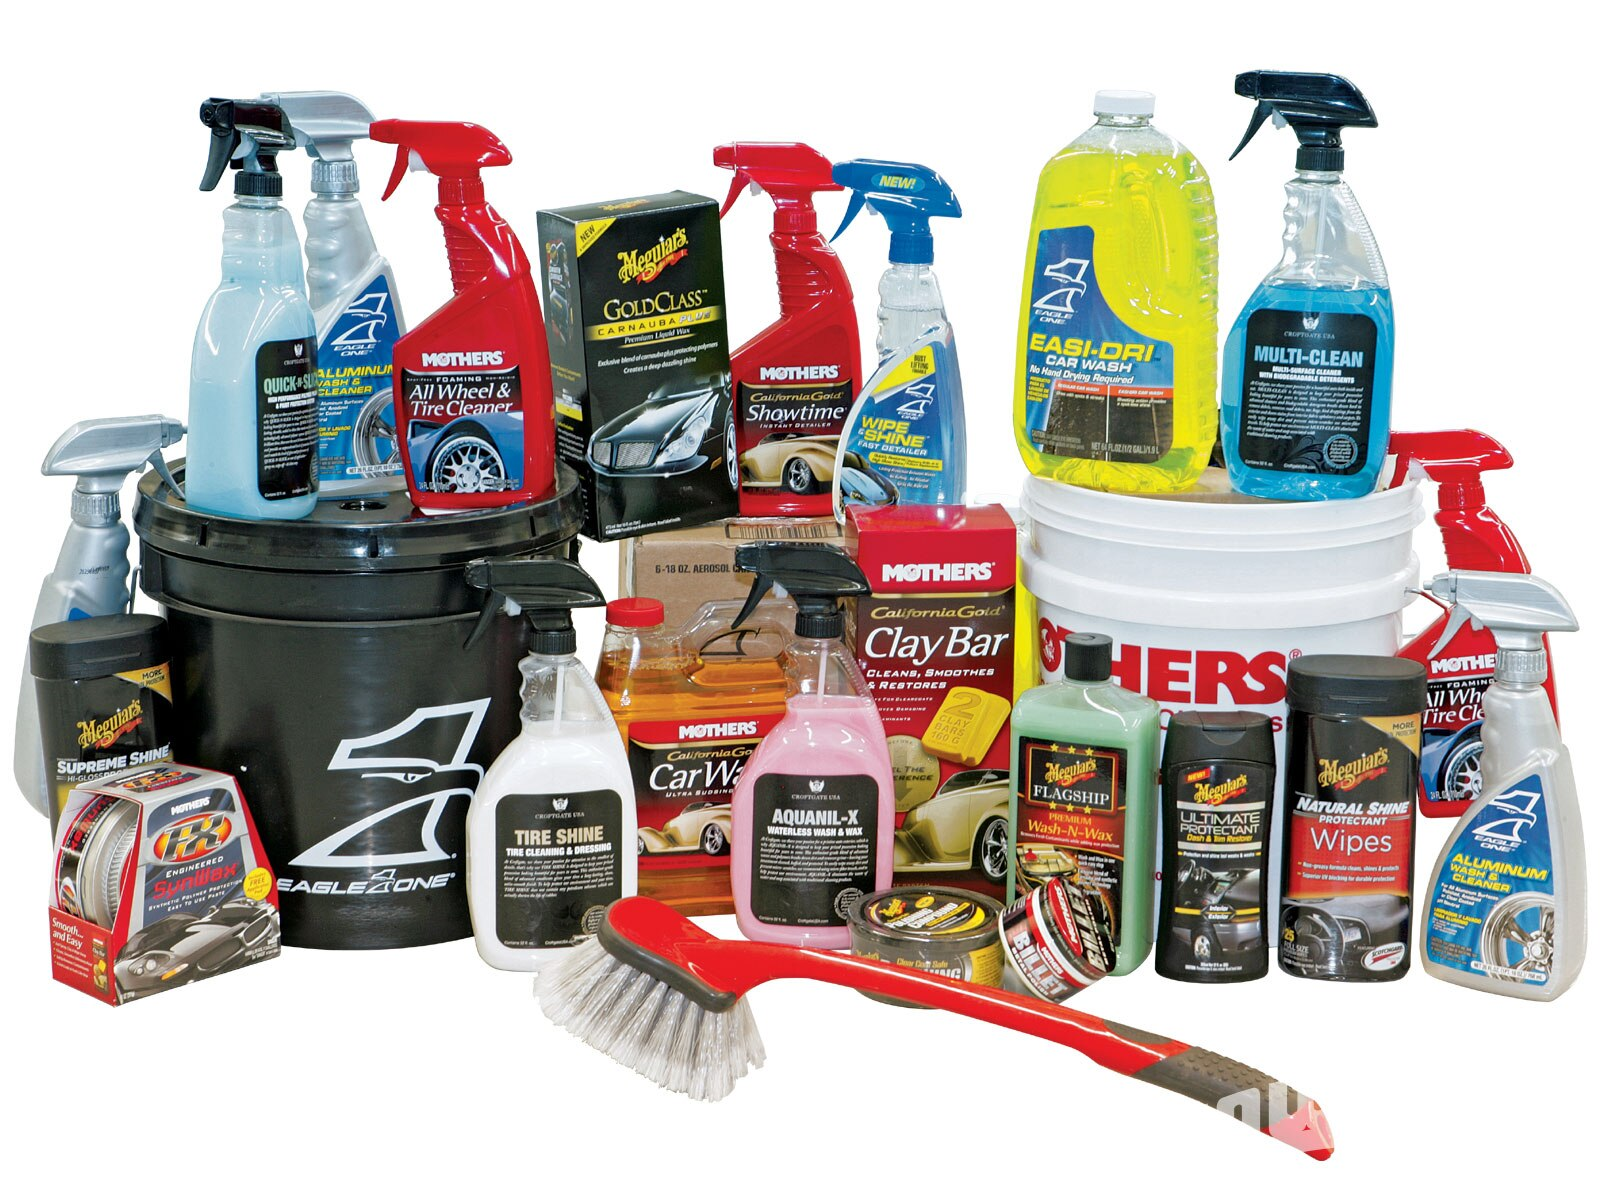 1009_lrmp_01_z-new_lowrider_products-cleaning_products4